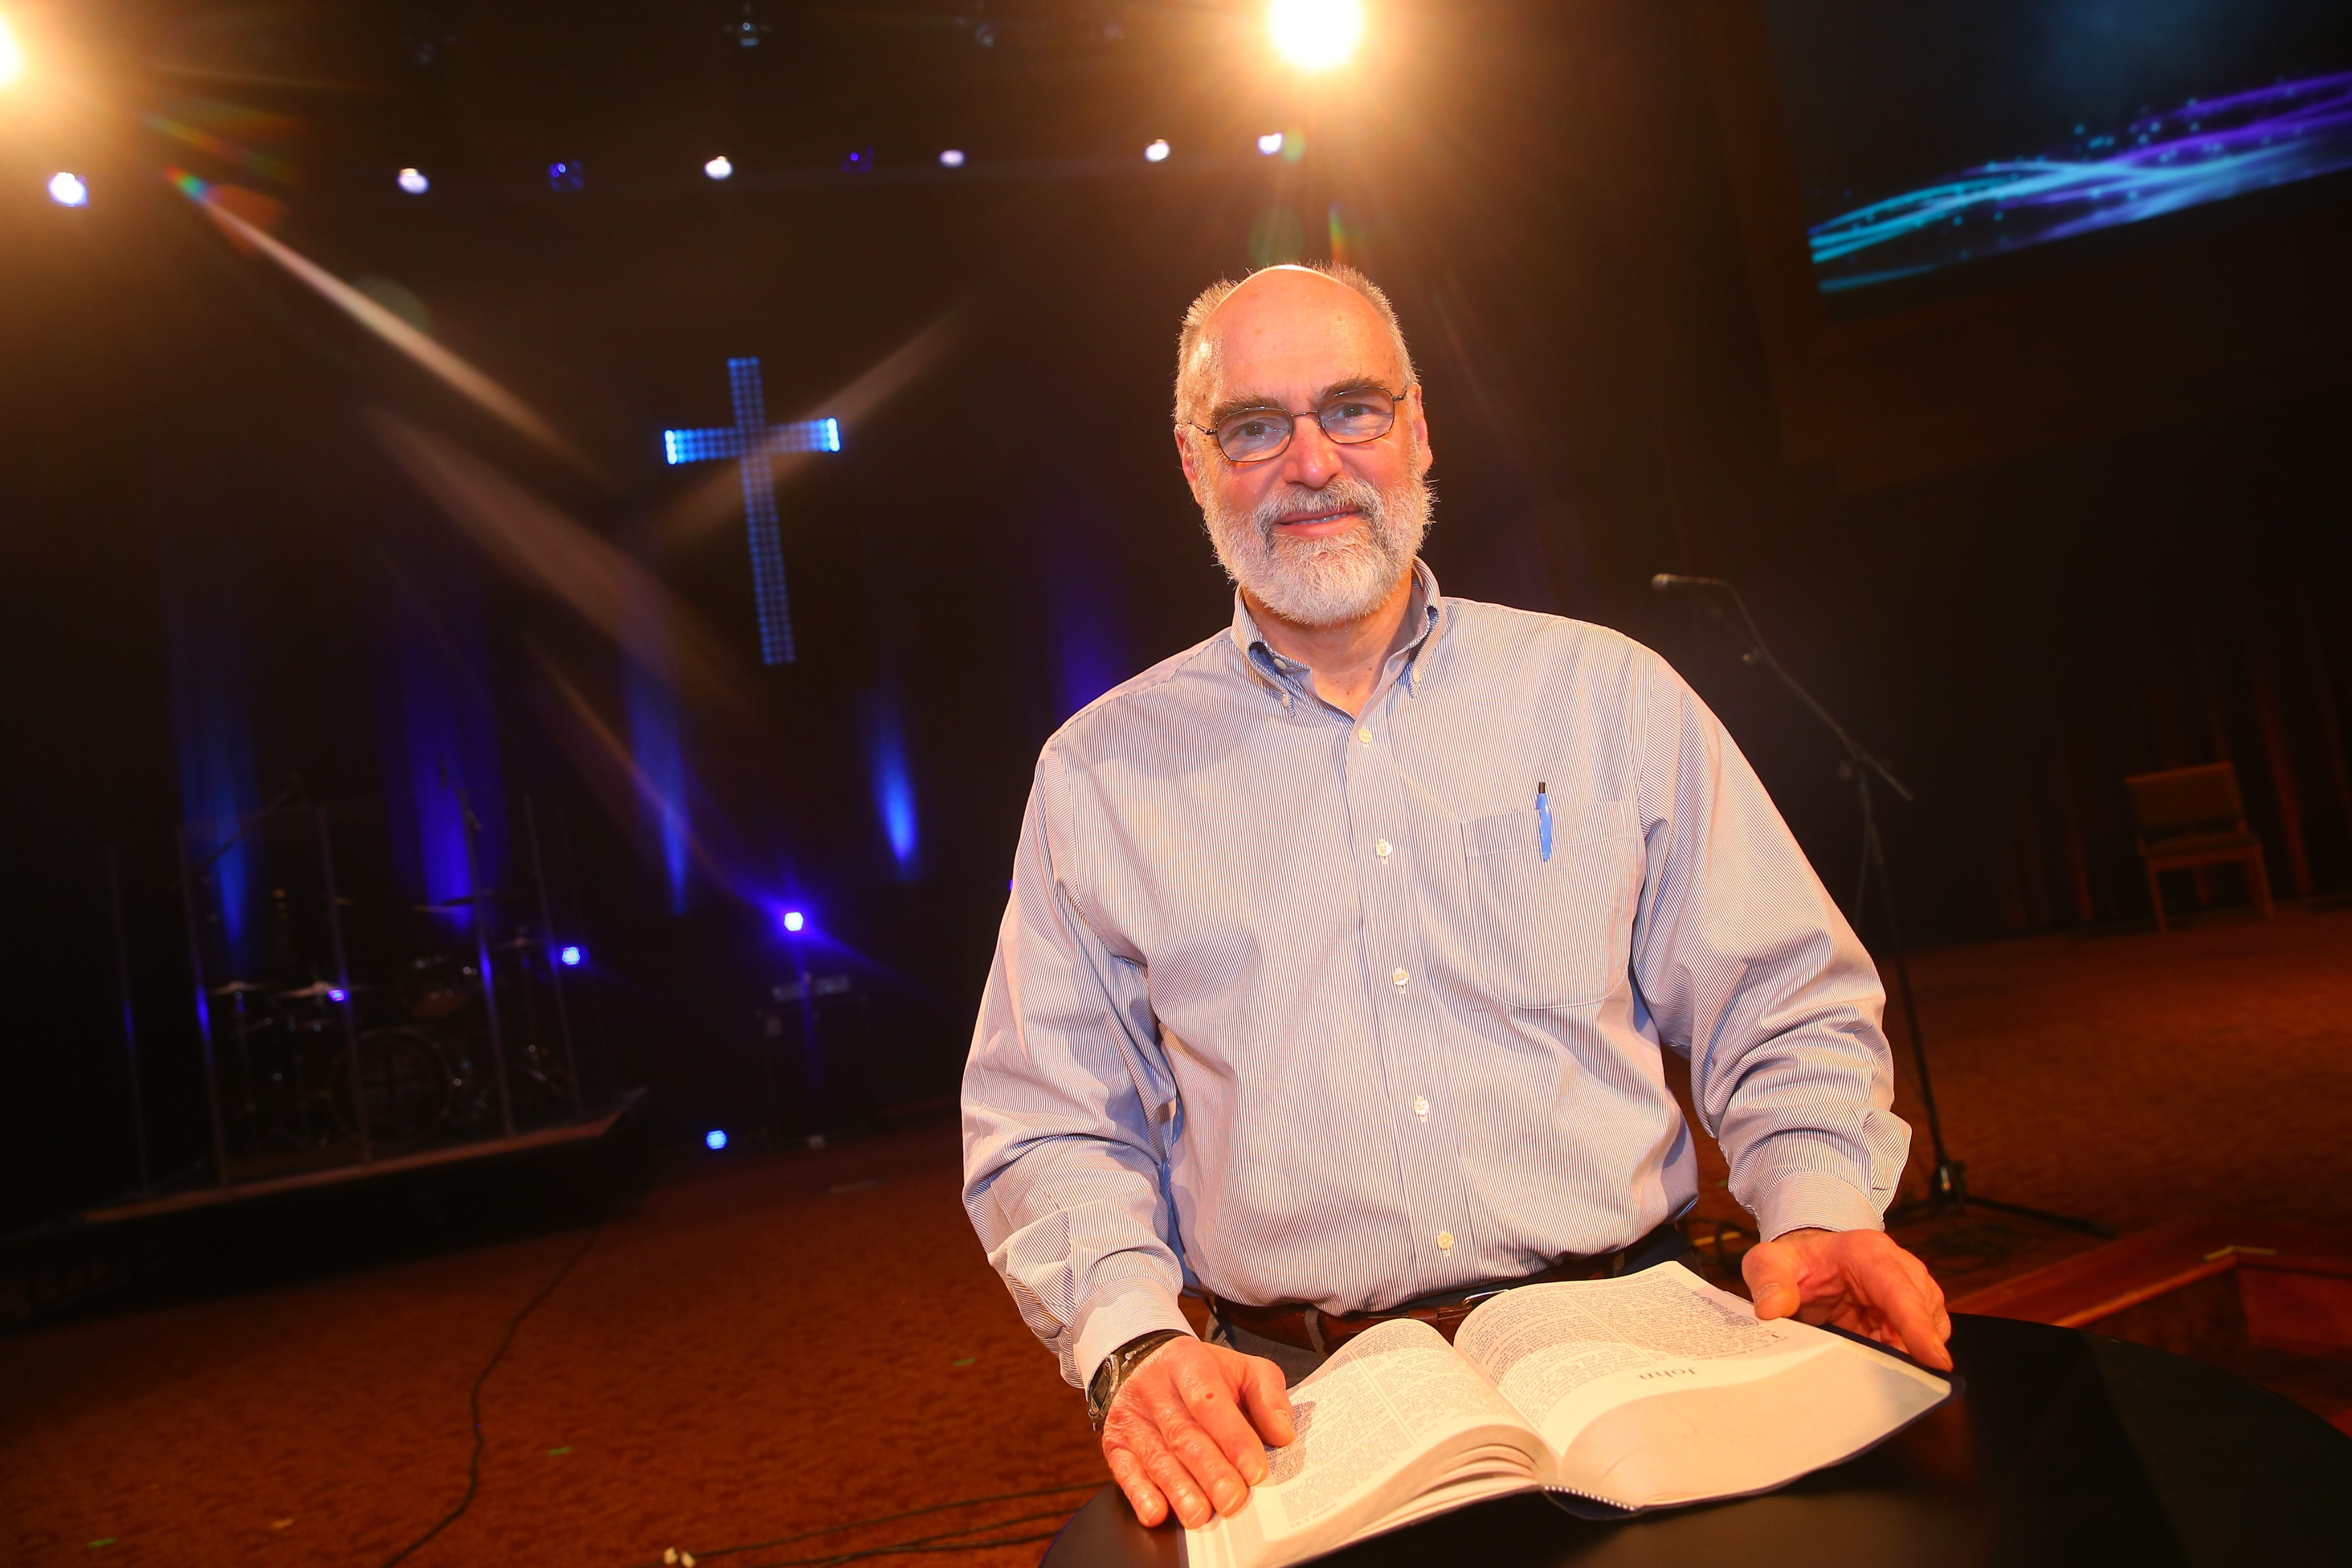 Rev. Greg McClain is retiring after leading Wesleyan Church in Hamburg for the past 38 years, at Wesleyan Church of Hamburg in Hamburg , N.Y., on Friday April 15, 2016. (John Hickey/Buffalo News)